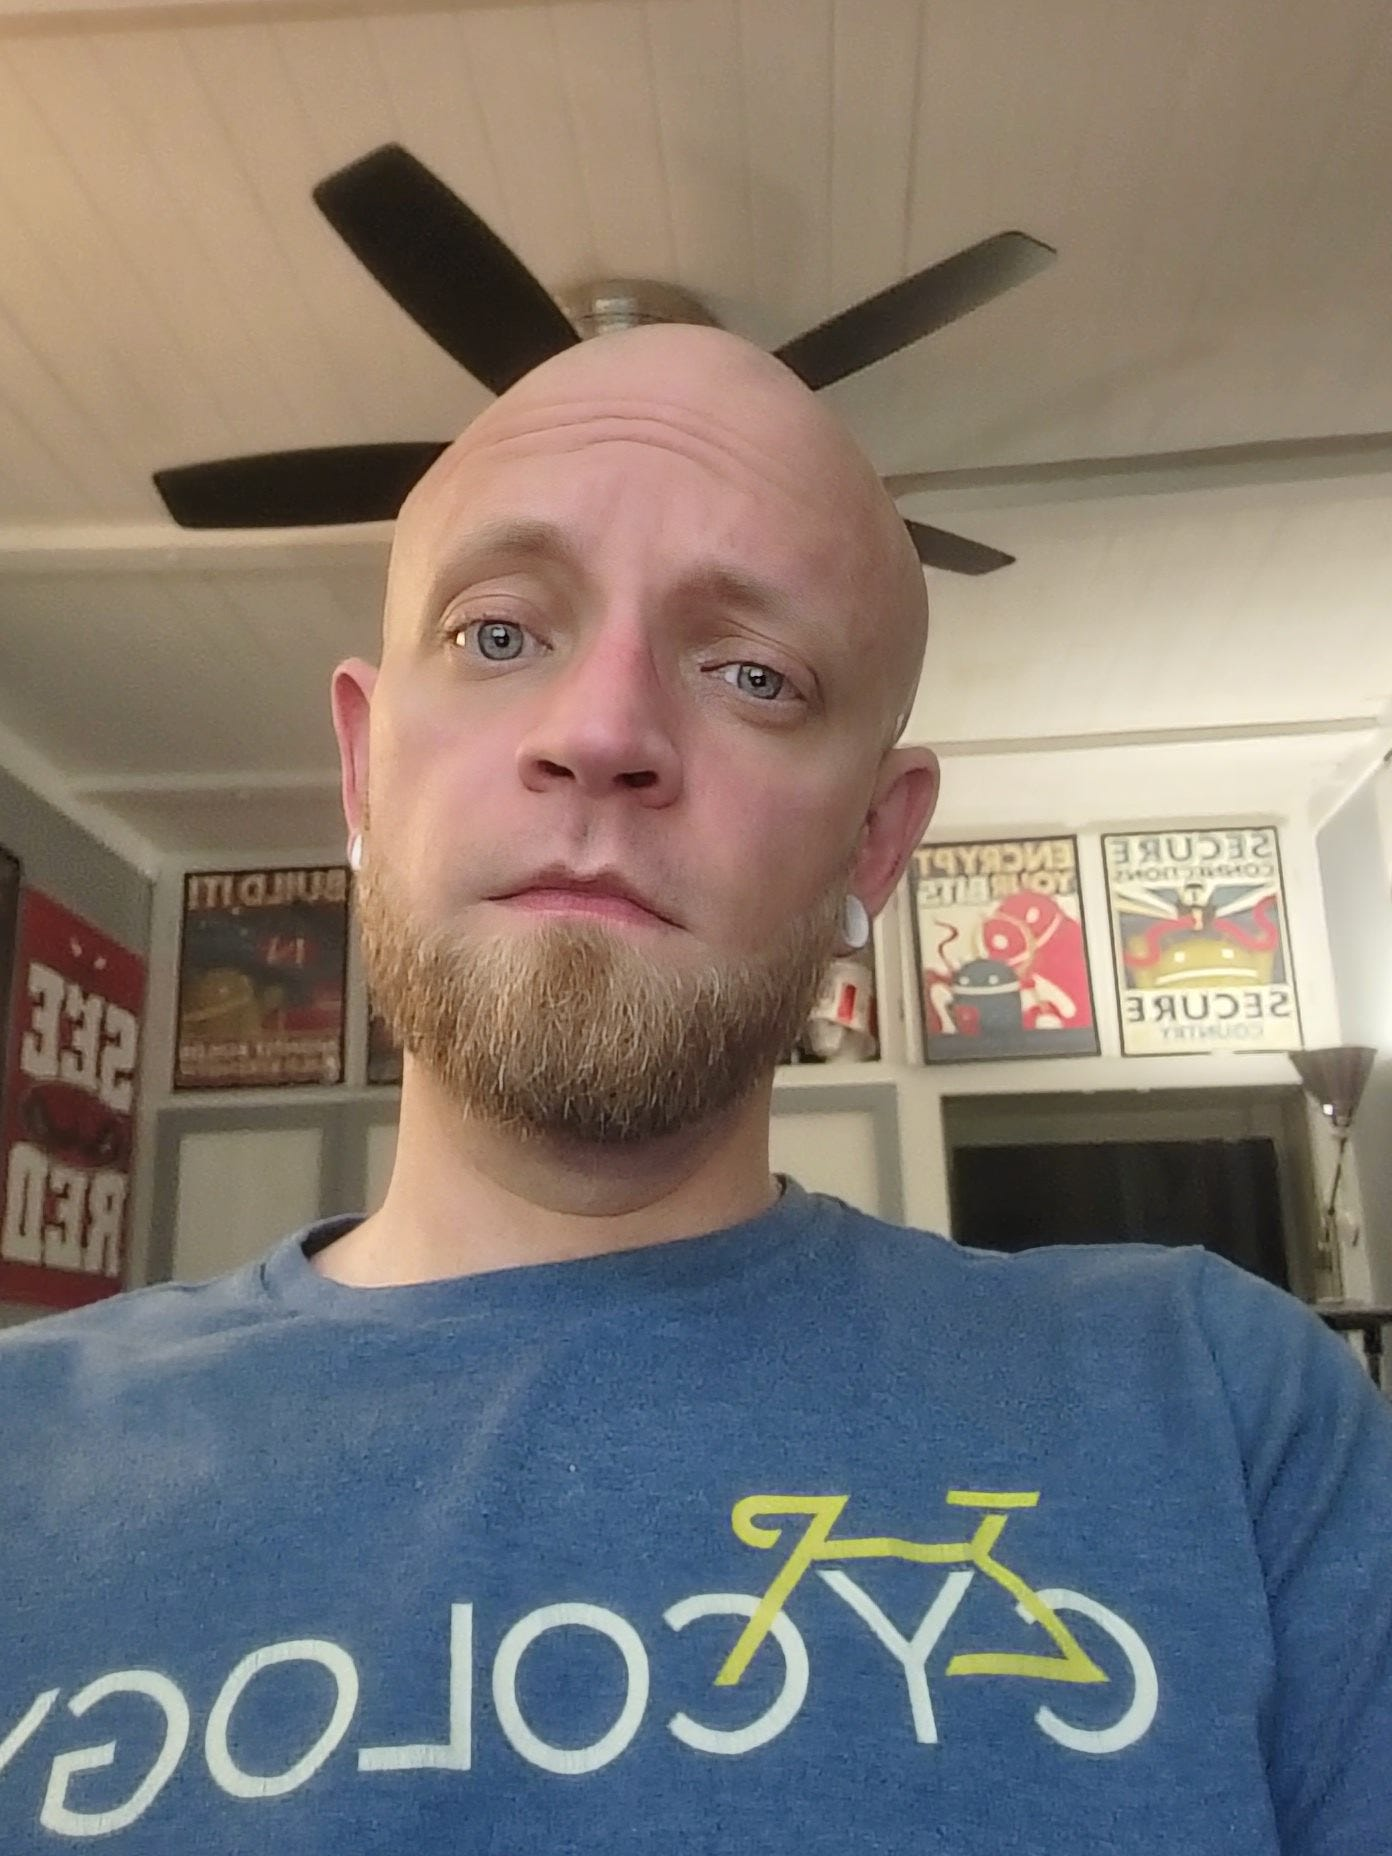 An indoor selfie with the under display camera. Super washed out and bad.